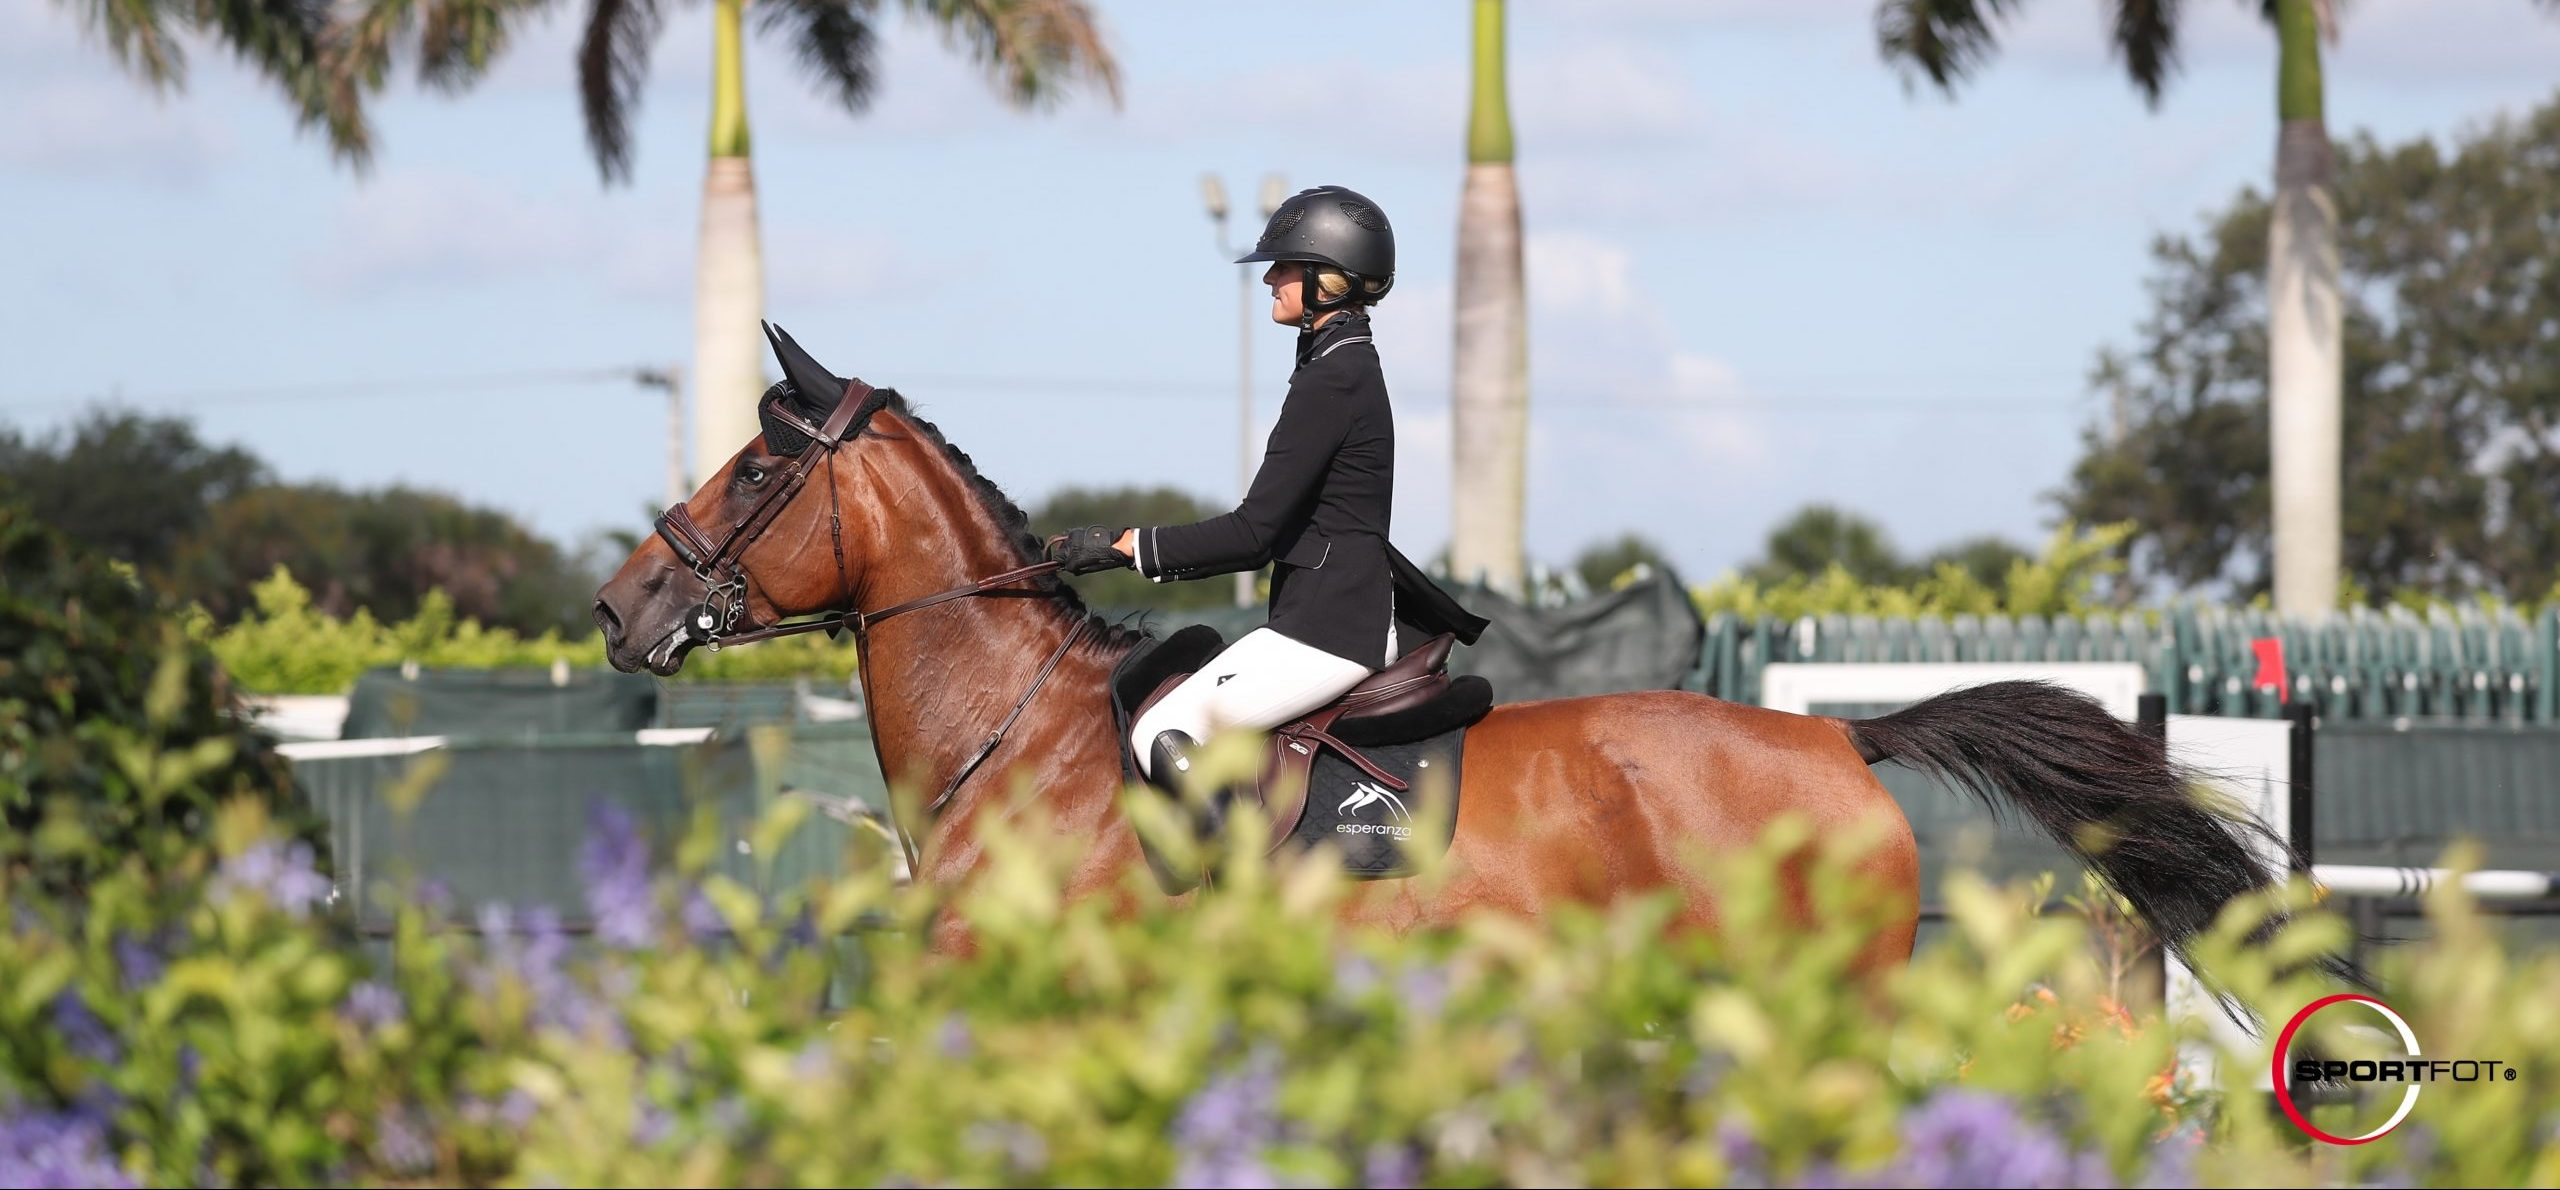 Nice round for reference DIVA Z in the 1.30m class in Tryon!